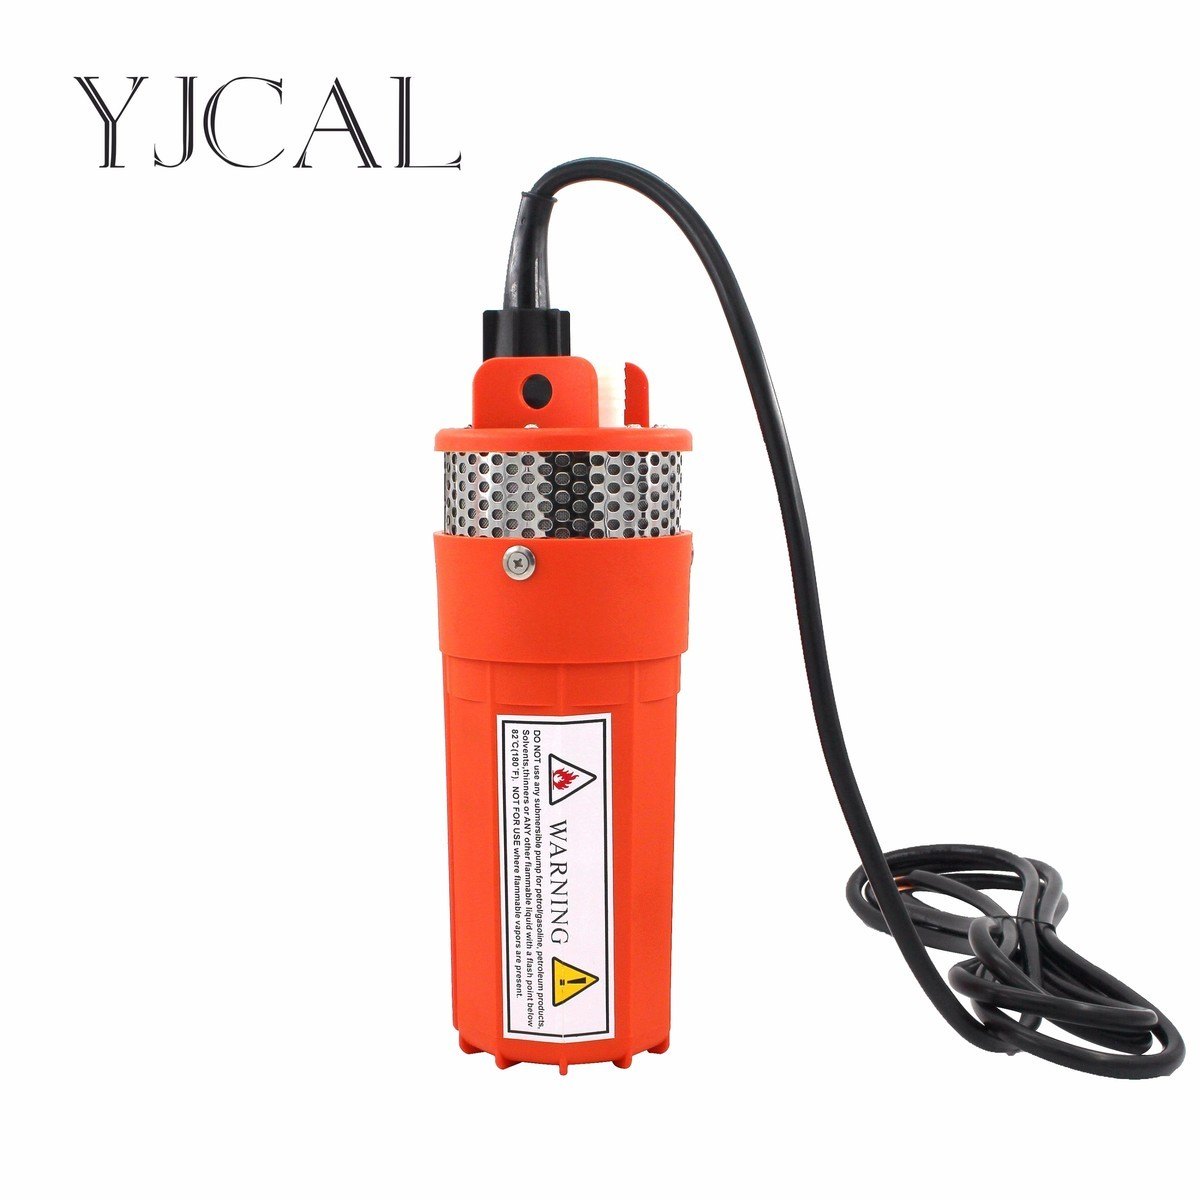 DC12/24V Submersible Solar Water Pump 70M Lift Small Power For Outdoor Garden Fountain Deep Well Aquarium Aquario 50mm 2 inch deep well submersible water pump deep well water pump 220v screw submersible water pump for home 2 inch well pump